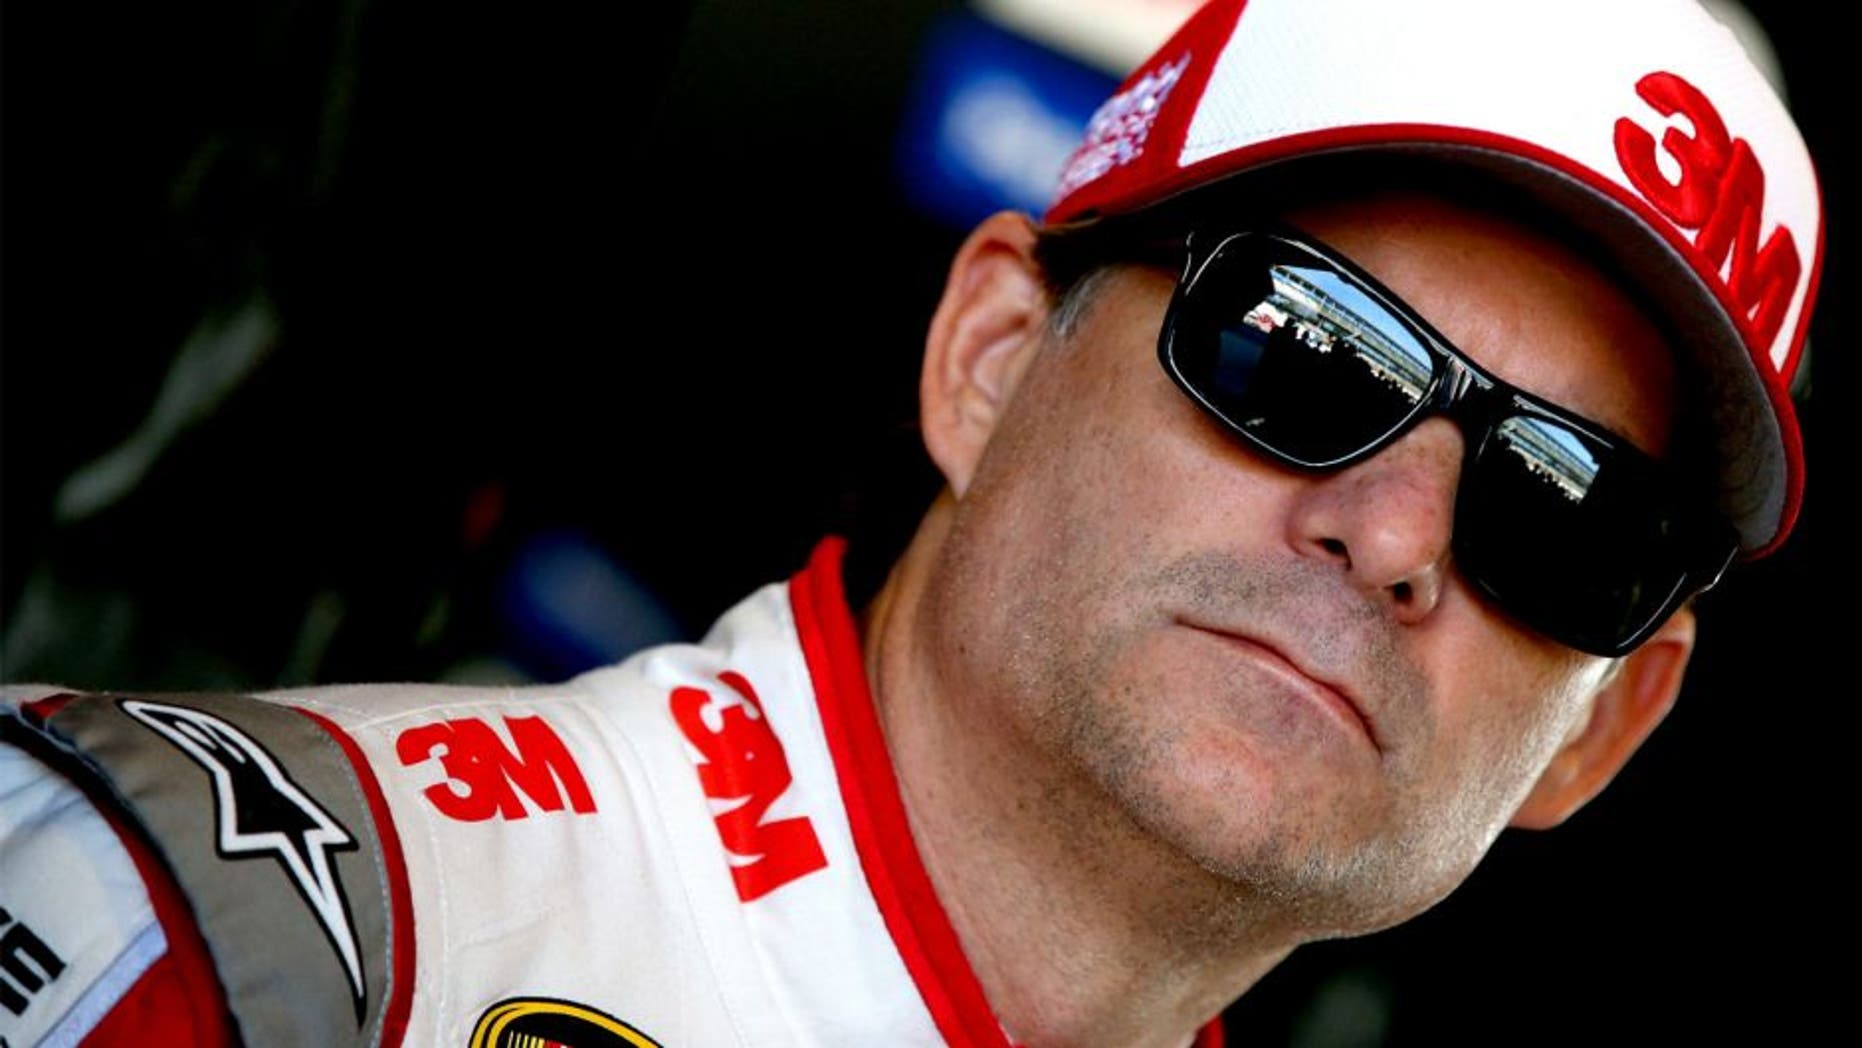 INDIANAPOLIS, IN - JULY 24: Jeff Gordon, driver of the #24 3M Chevrolet, stands in the garage area during practice for the NASCAR Sprint Cup Series Crown Royal Presents the Jeff Kyle 400 at the Brickyard at Indianapolis Motorspeedway on July 24, 2015 in Indianapolis, Indiana. (Photo by Sean Gardner/NASCAR via Getty Images)